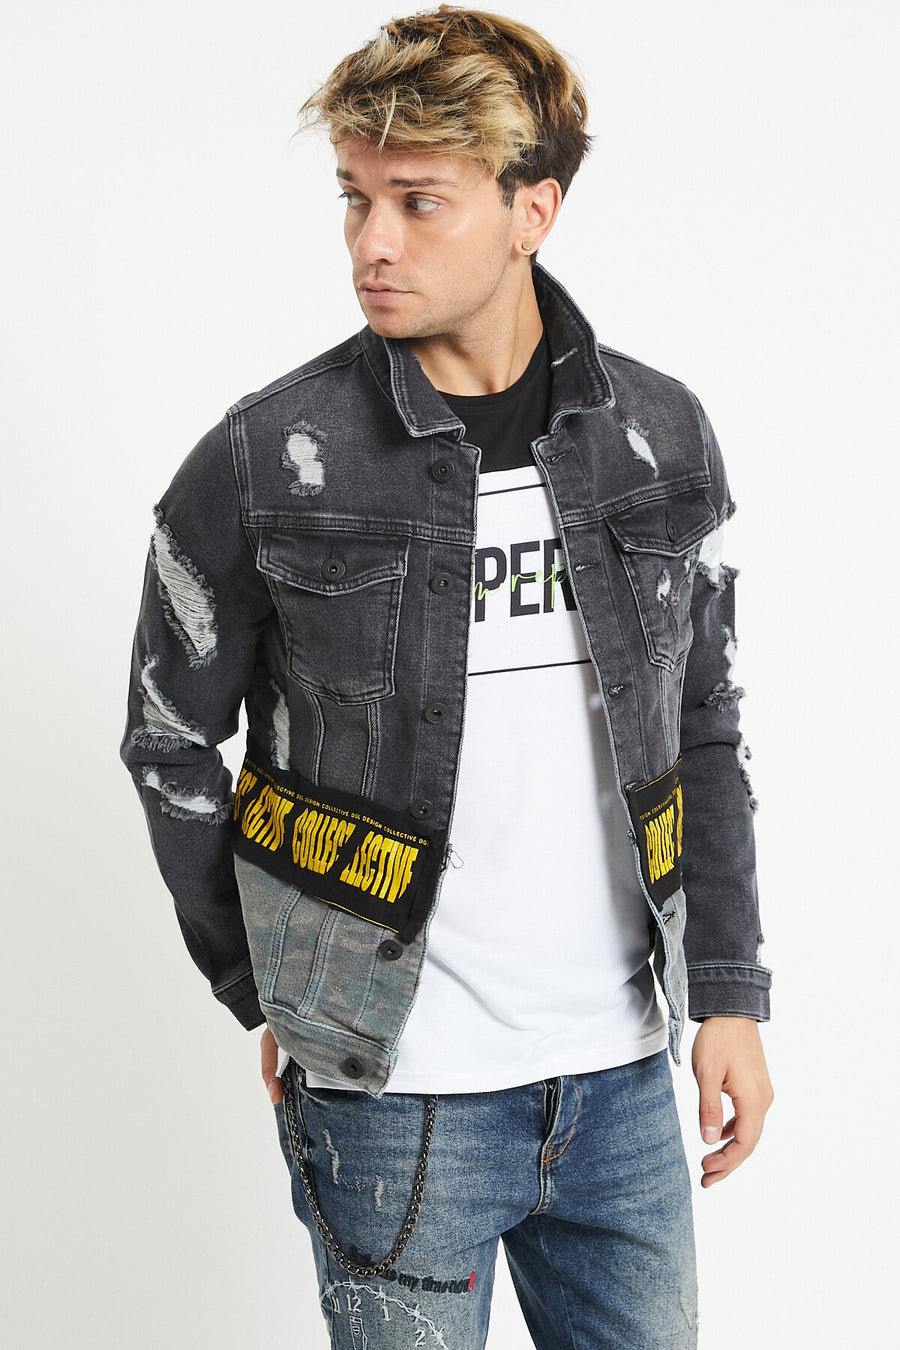 Sneakerjeans Gray Ripped Skinny Jeans Jacket DR4807